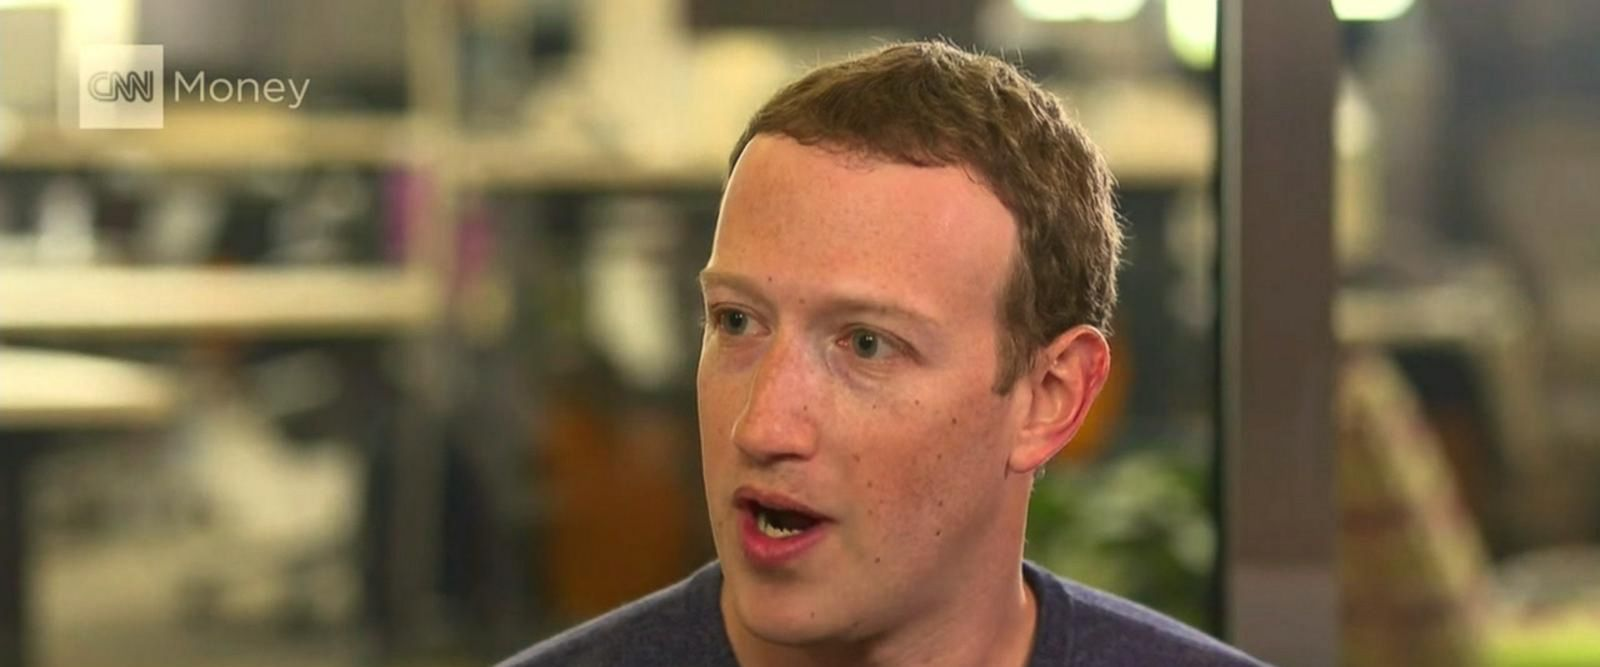 VIDEO: Mark Zuckerberg apologizes for data theft on Facebook